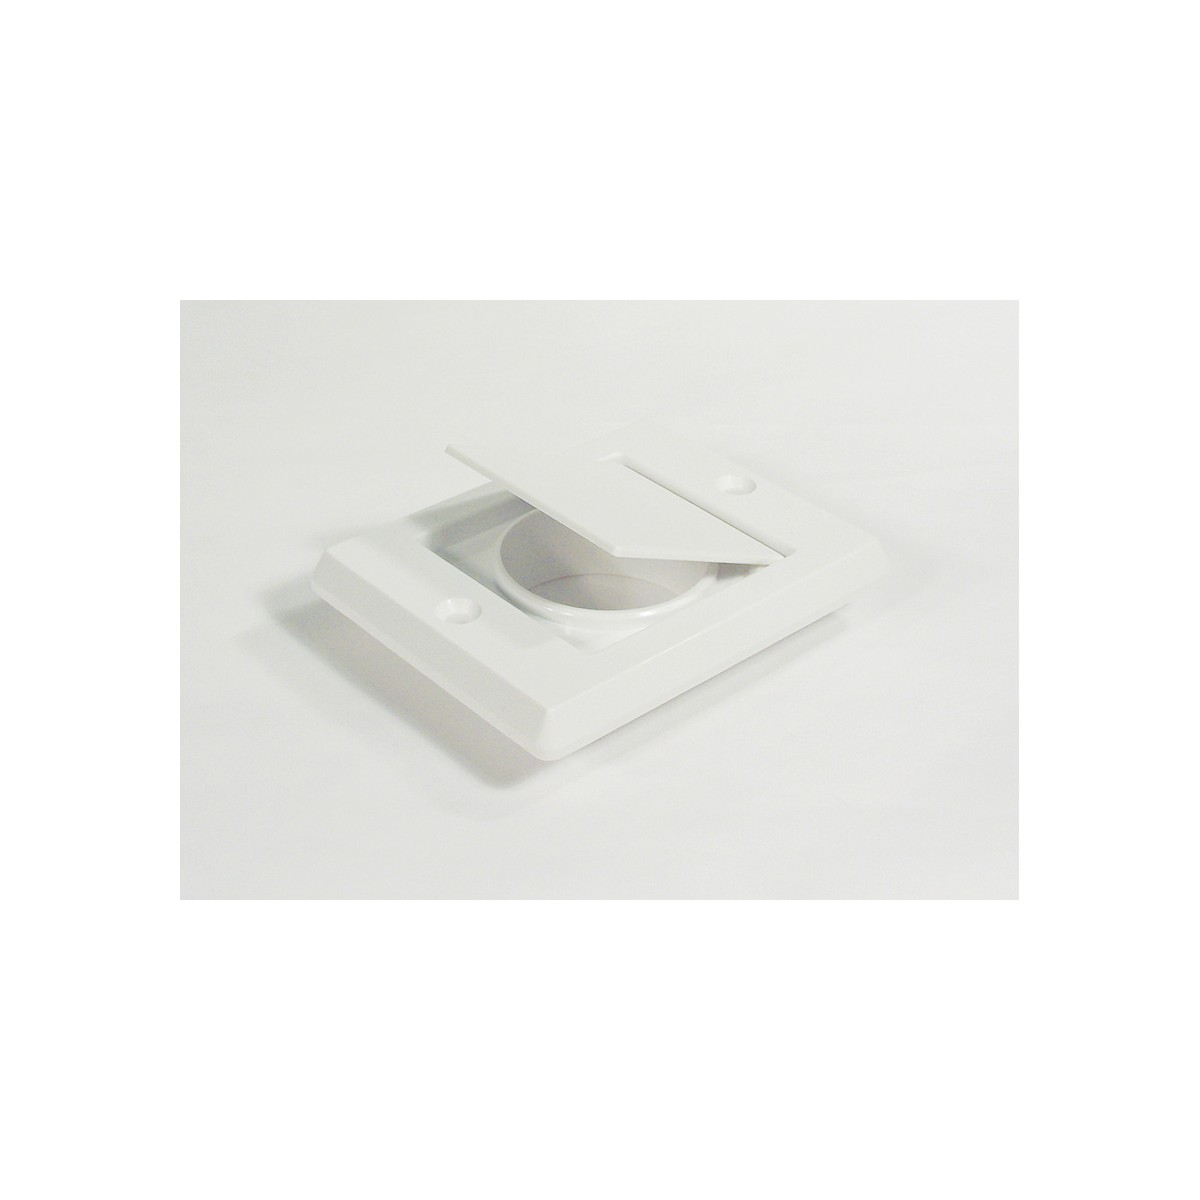 Exhaust Vent Cap Fitting For Central Vac White